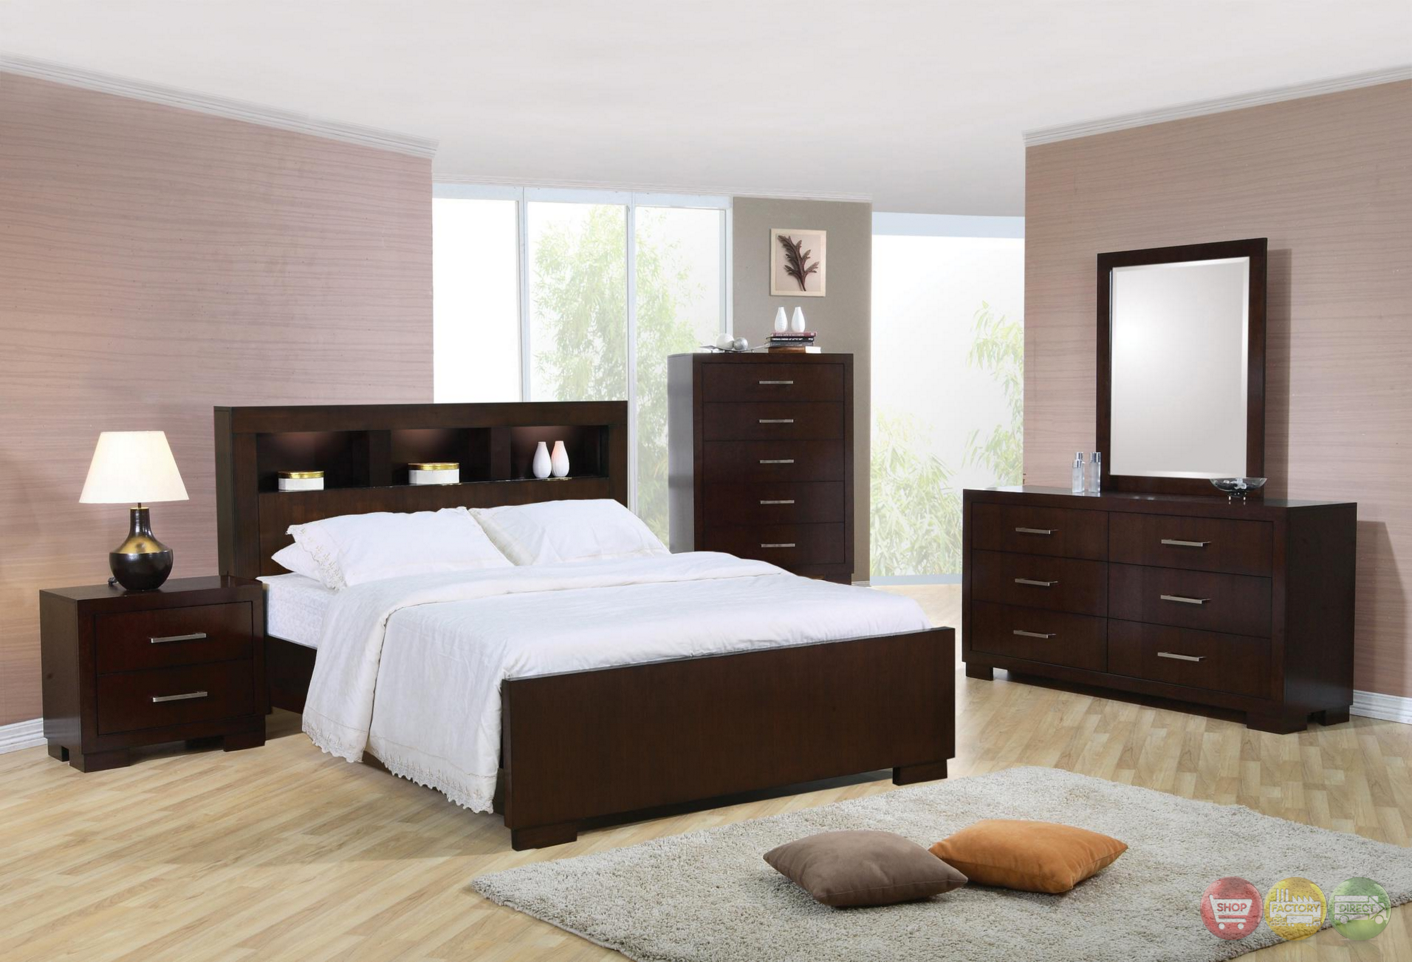 Jessica California King Storage Bed Contemporary Bedroom Furniture Collection